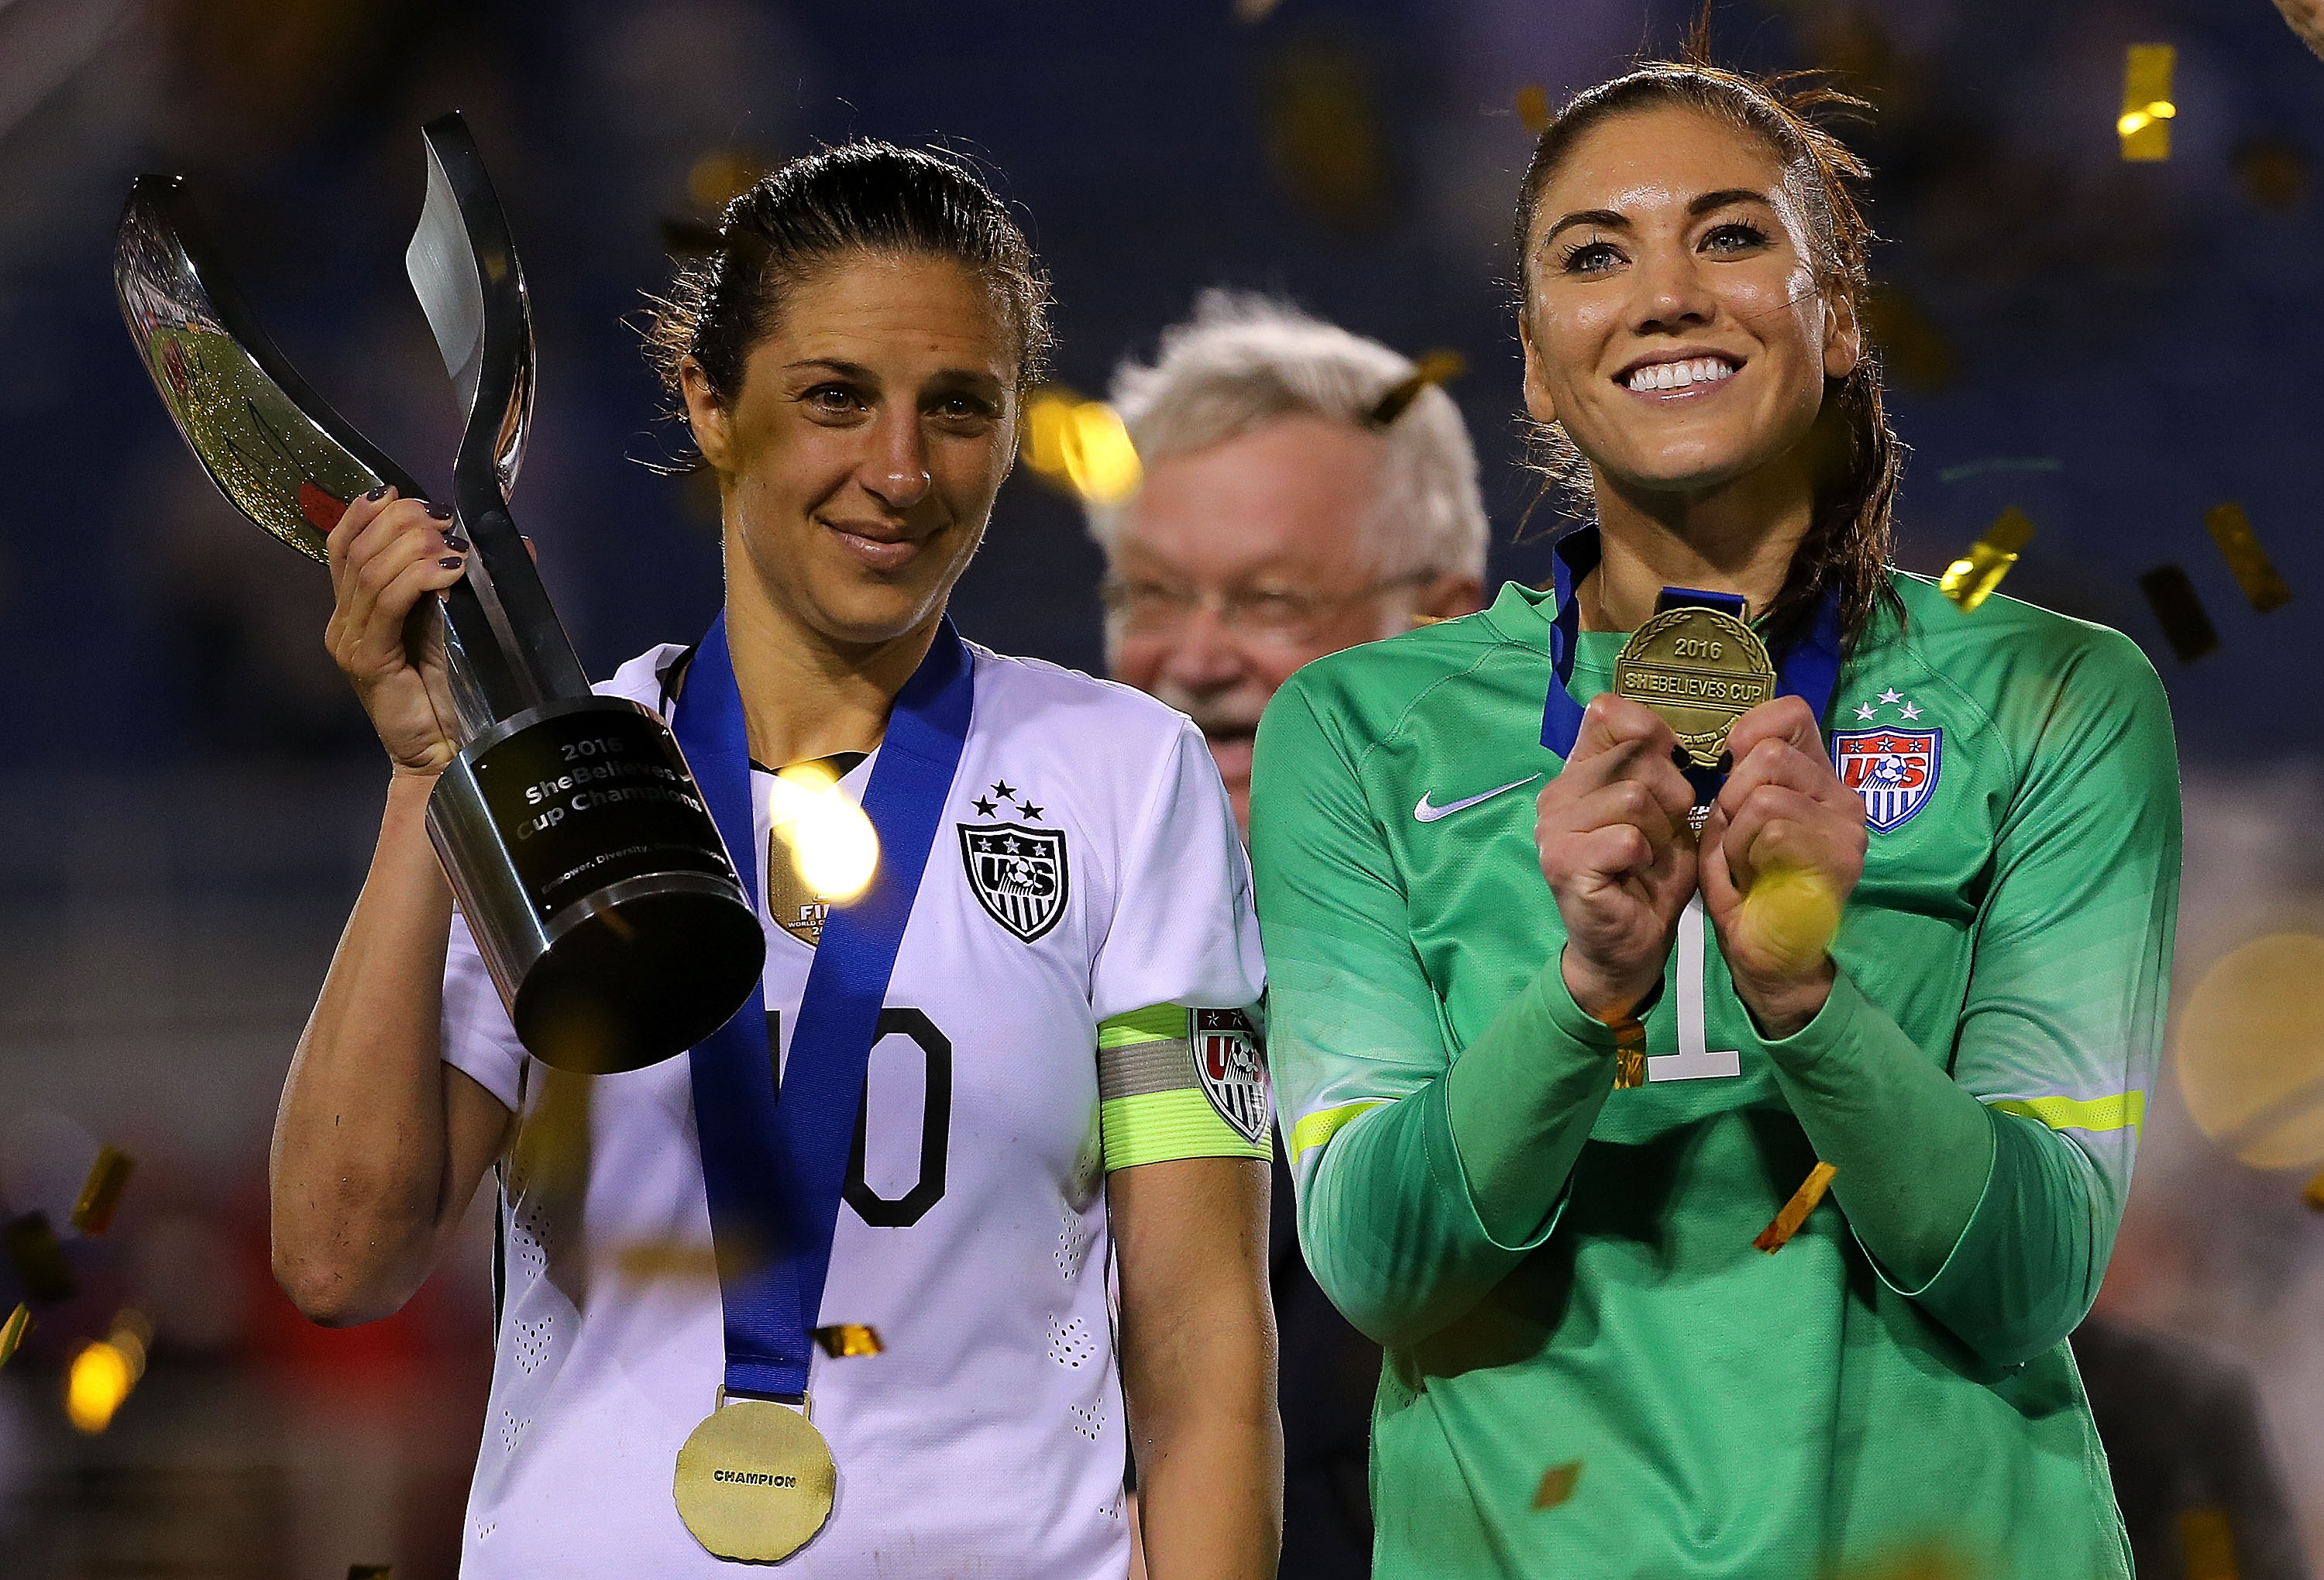 Hope Solo #1 and Carli Lloyd #10 of the United States celebrate after winning a match against Germany in the 2016 SheBelieves Cup on March 9, 2016 in Boca Raton, Fla.